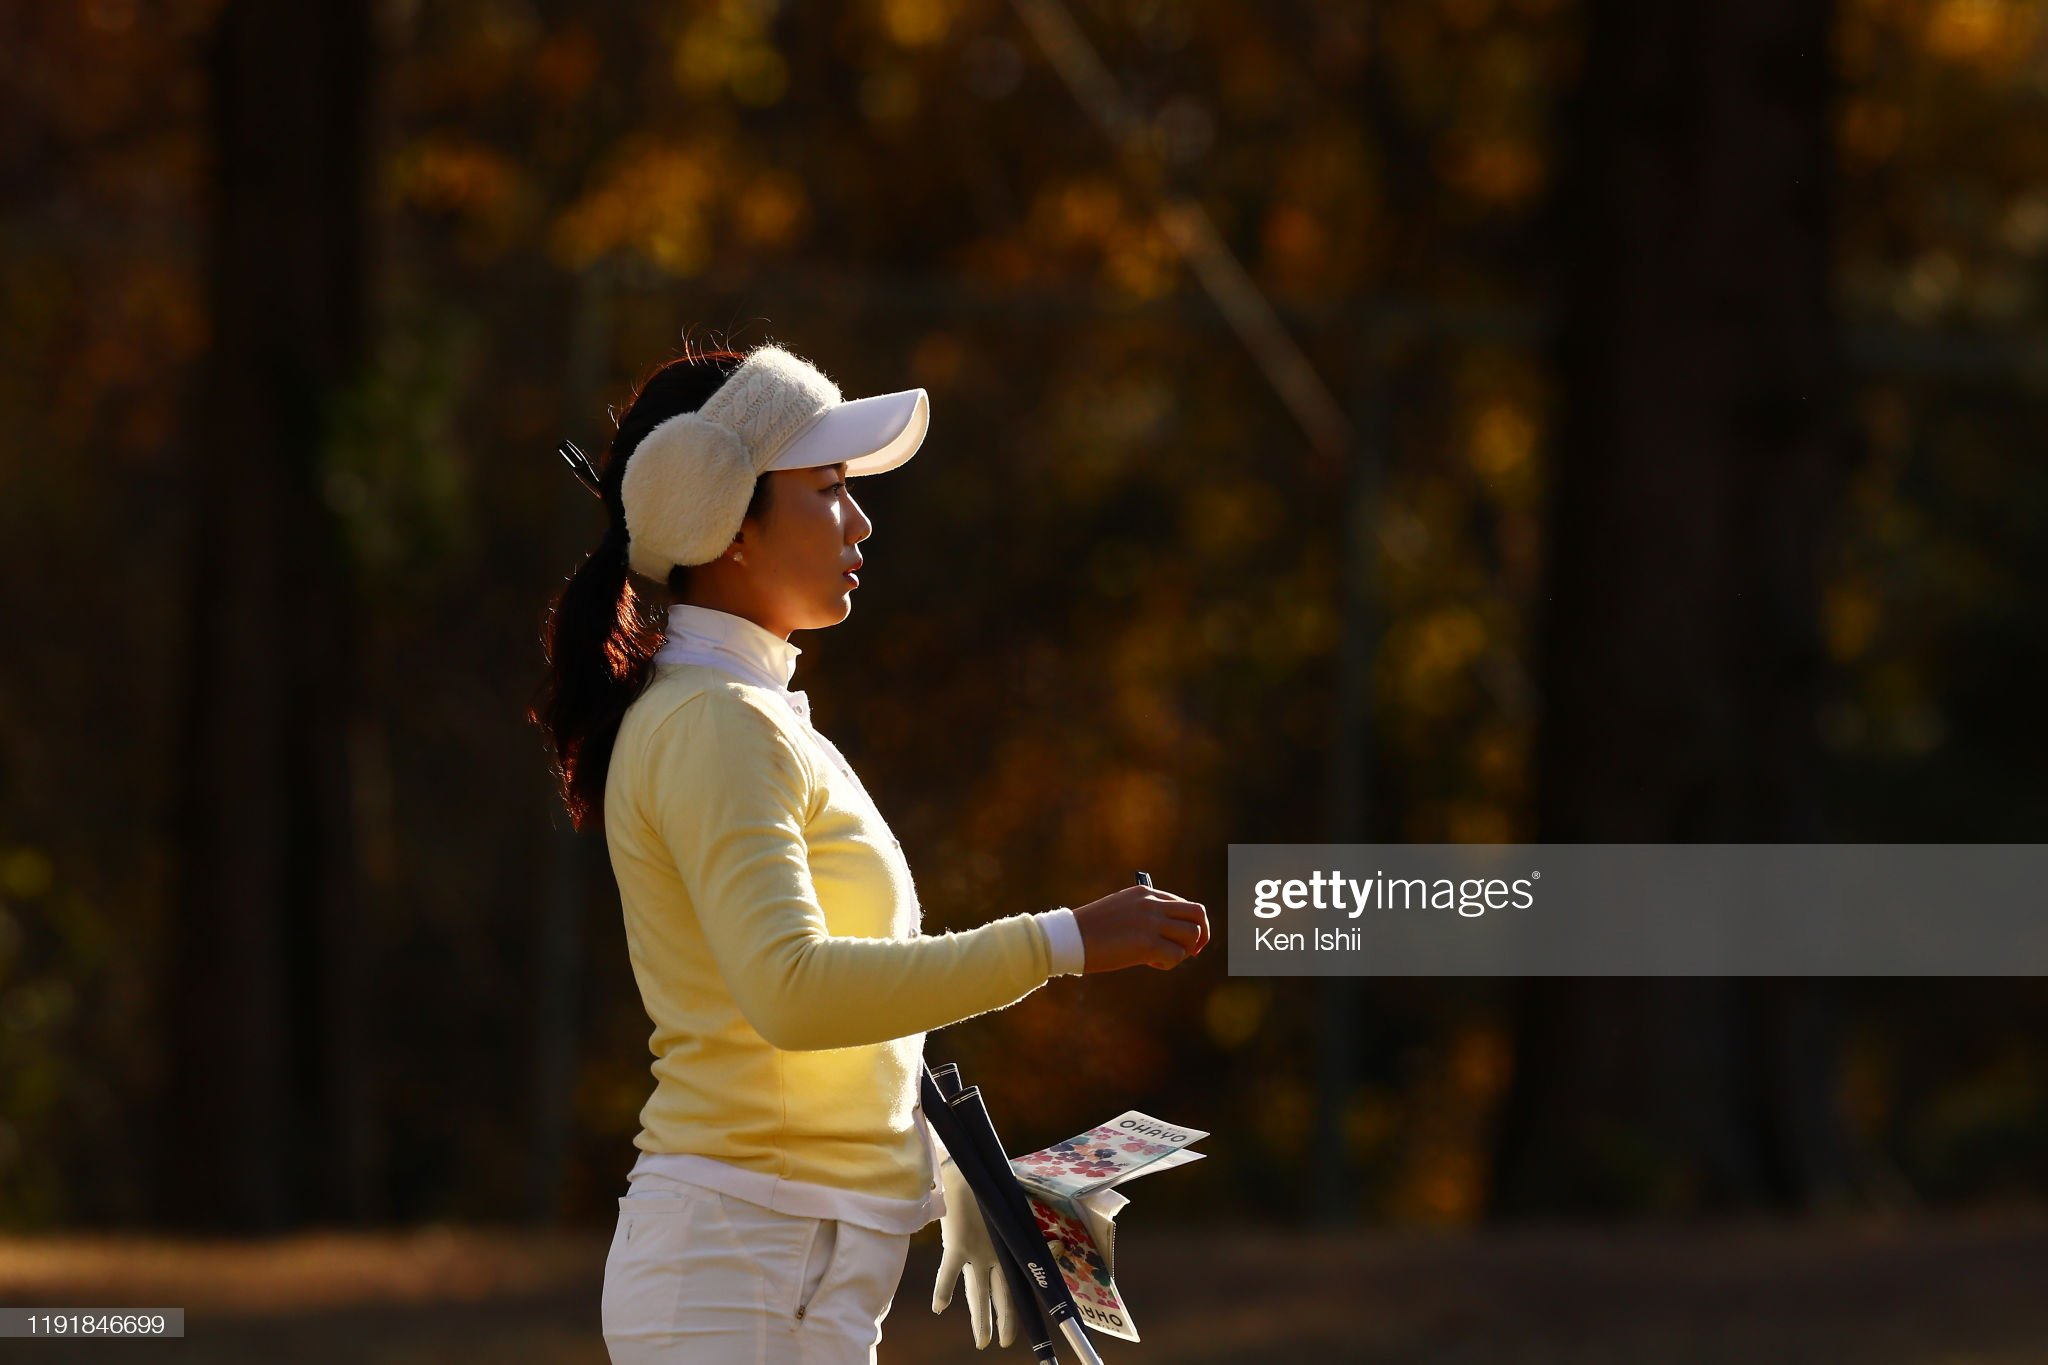 https://media.gettyimages.com/photos/seungji-han-of-south-korea-prepares-to-play-a-shot-on-the-15th-hole-picture-id1191846699?s=2048x2048